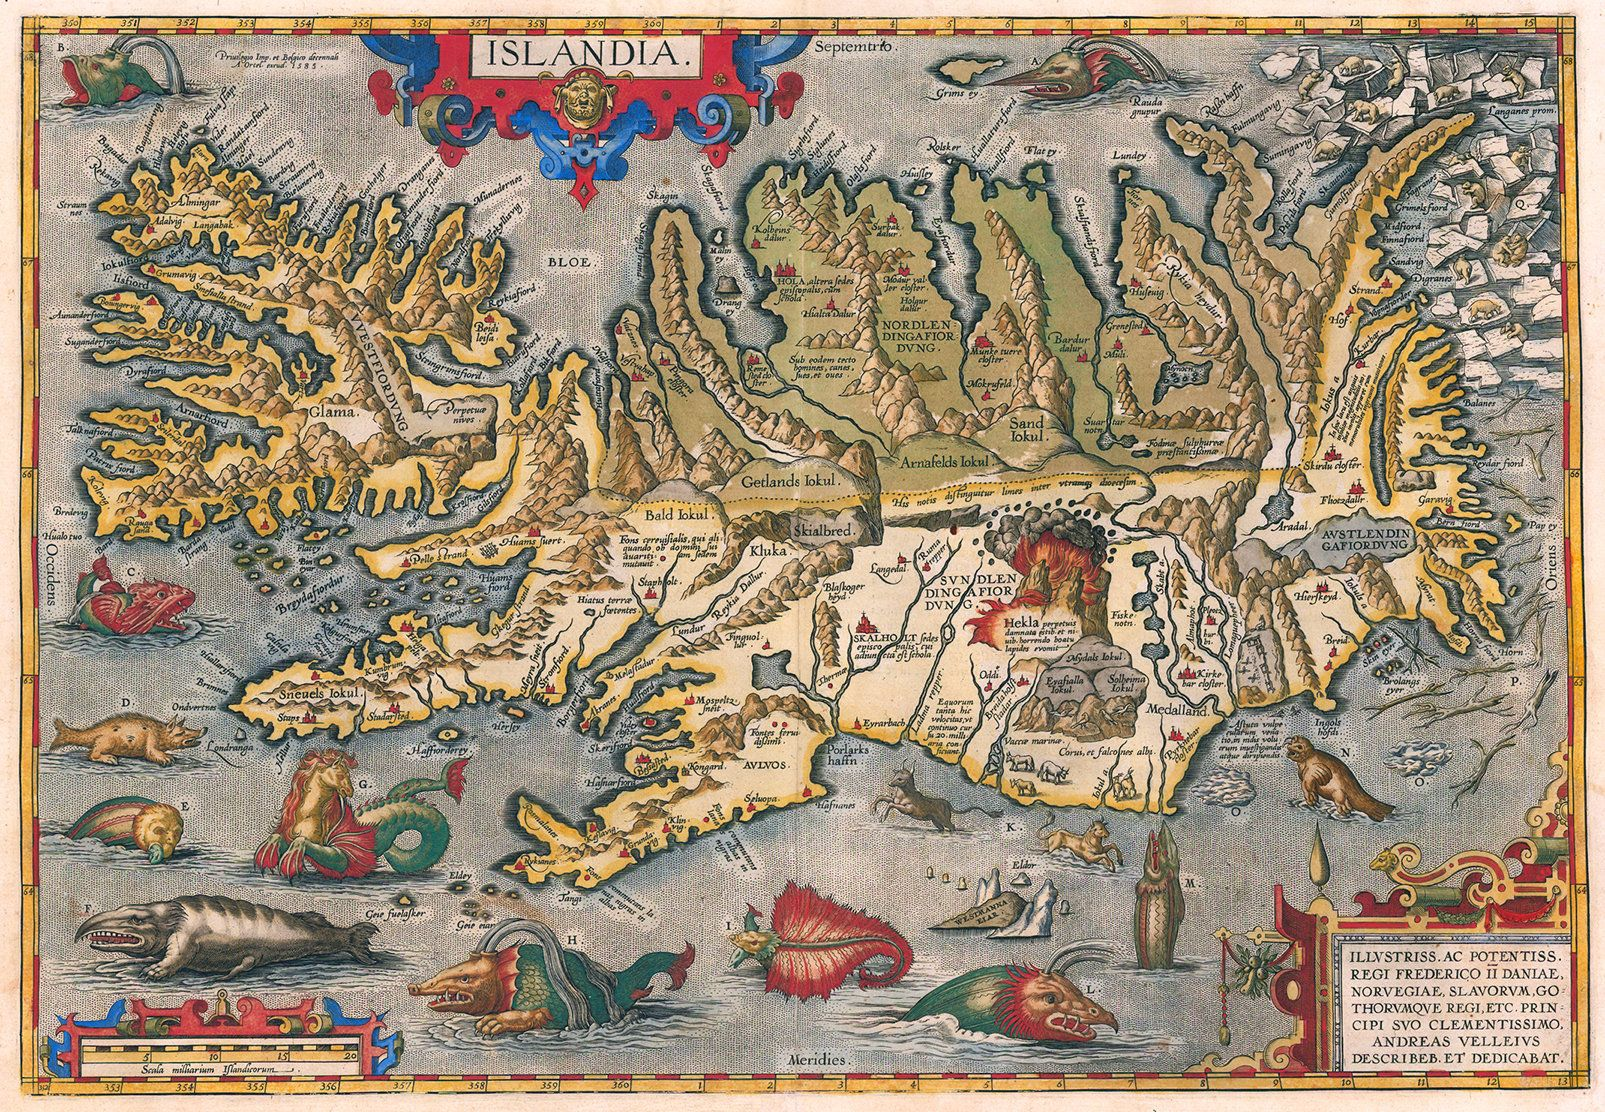 Ortelius' 1587 map of Iceland, complete with exploding volcanoes and mythological sea creatures.